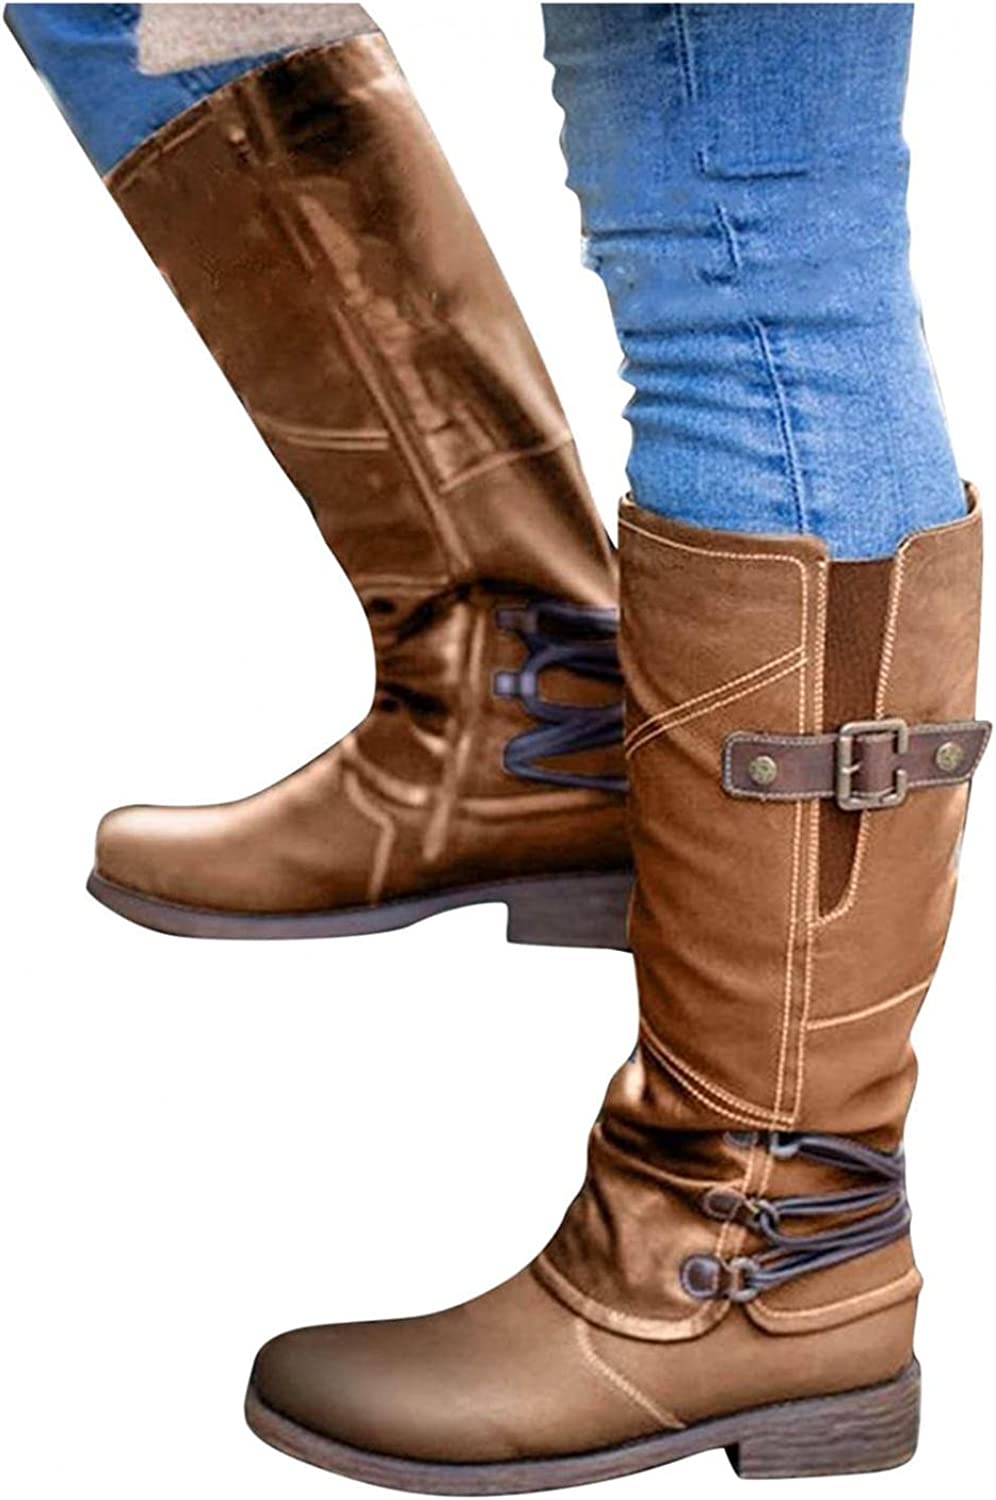 Hbeylia Boots For Women Vintage Fashion Casual Leather Round Tie Chunky Block Low Heels Motorcycle Riding Mid Calf Boots Retro Slip On Work Boots With Metal Buckle Winter Short Boots For Ladies